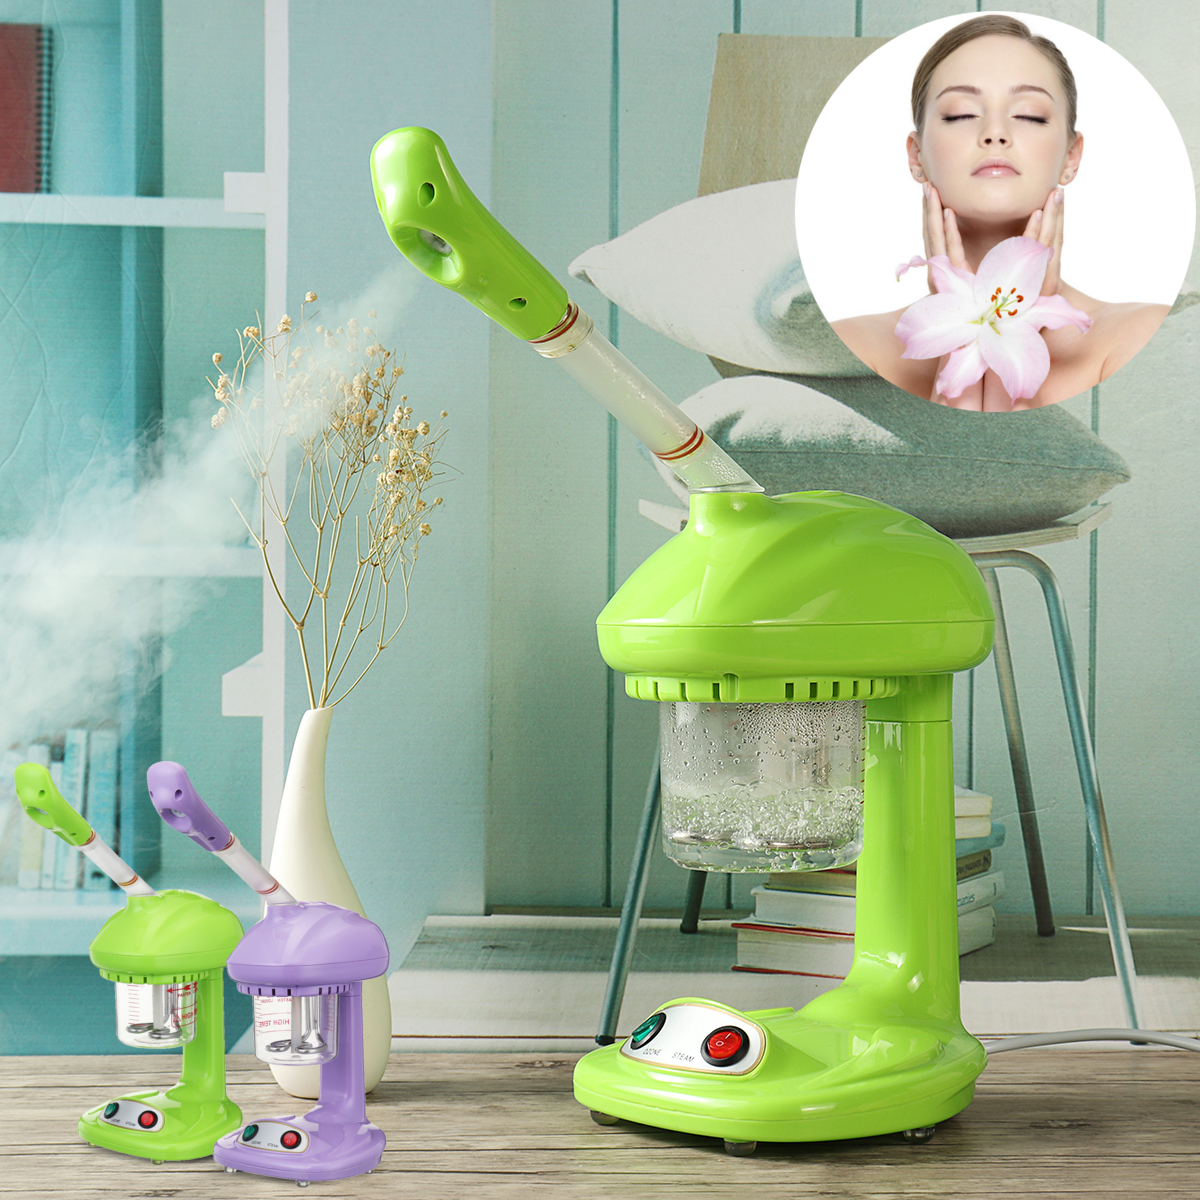 110V/220V US/EU Plug 480W Mini Table Facial Steamer Household Beauty Hot Spray Salon Spa Equipment Machine face Spa Device ...